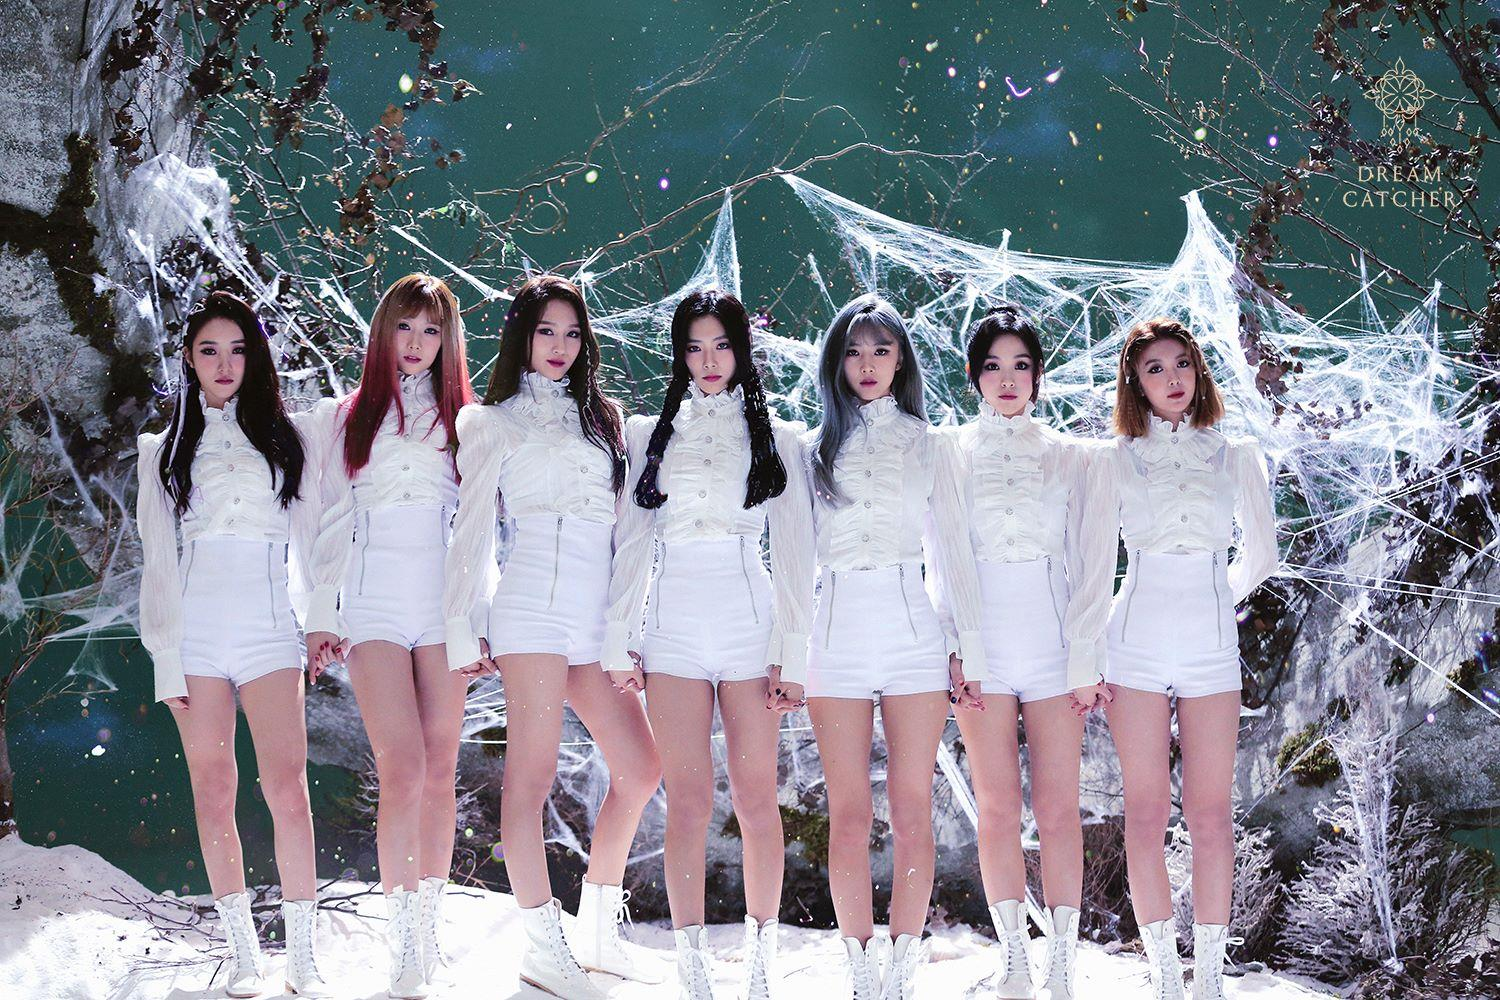 """Dreamcatcher Drives Forward with """"Nightmare: Escape the Era"""" – seoulbeats"""